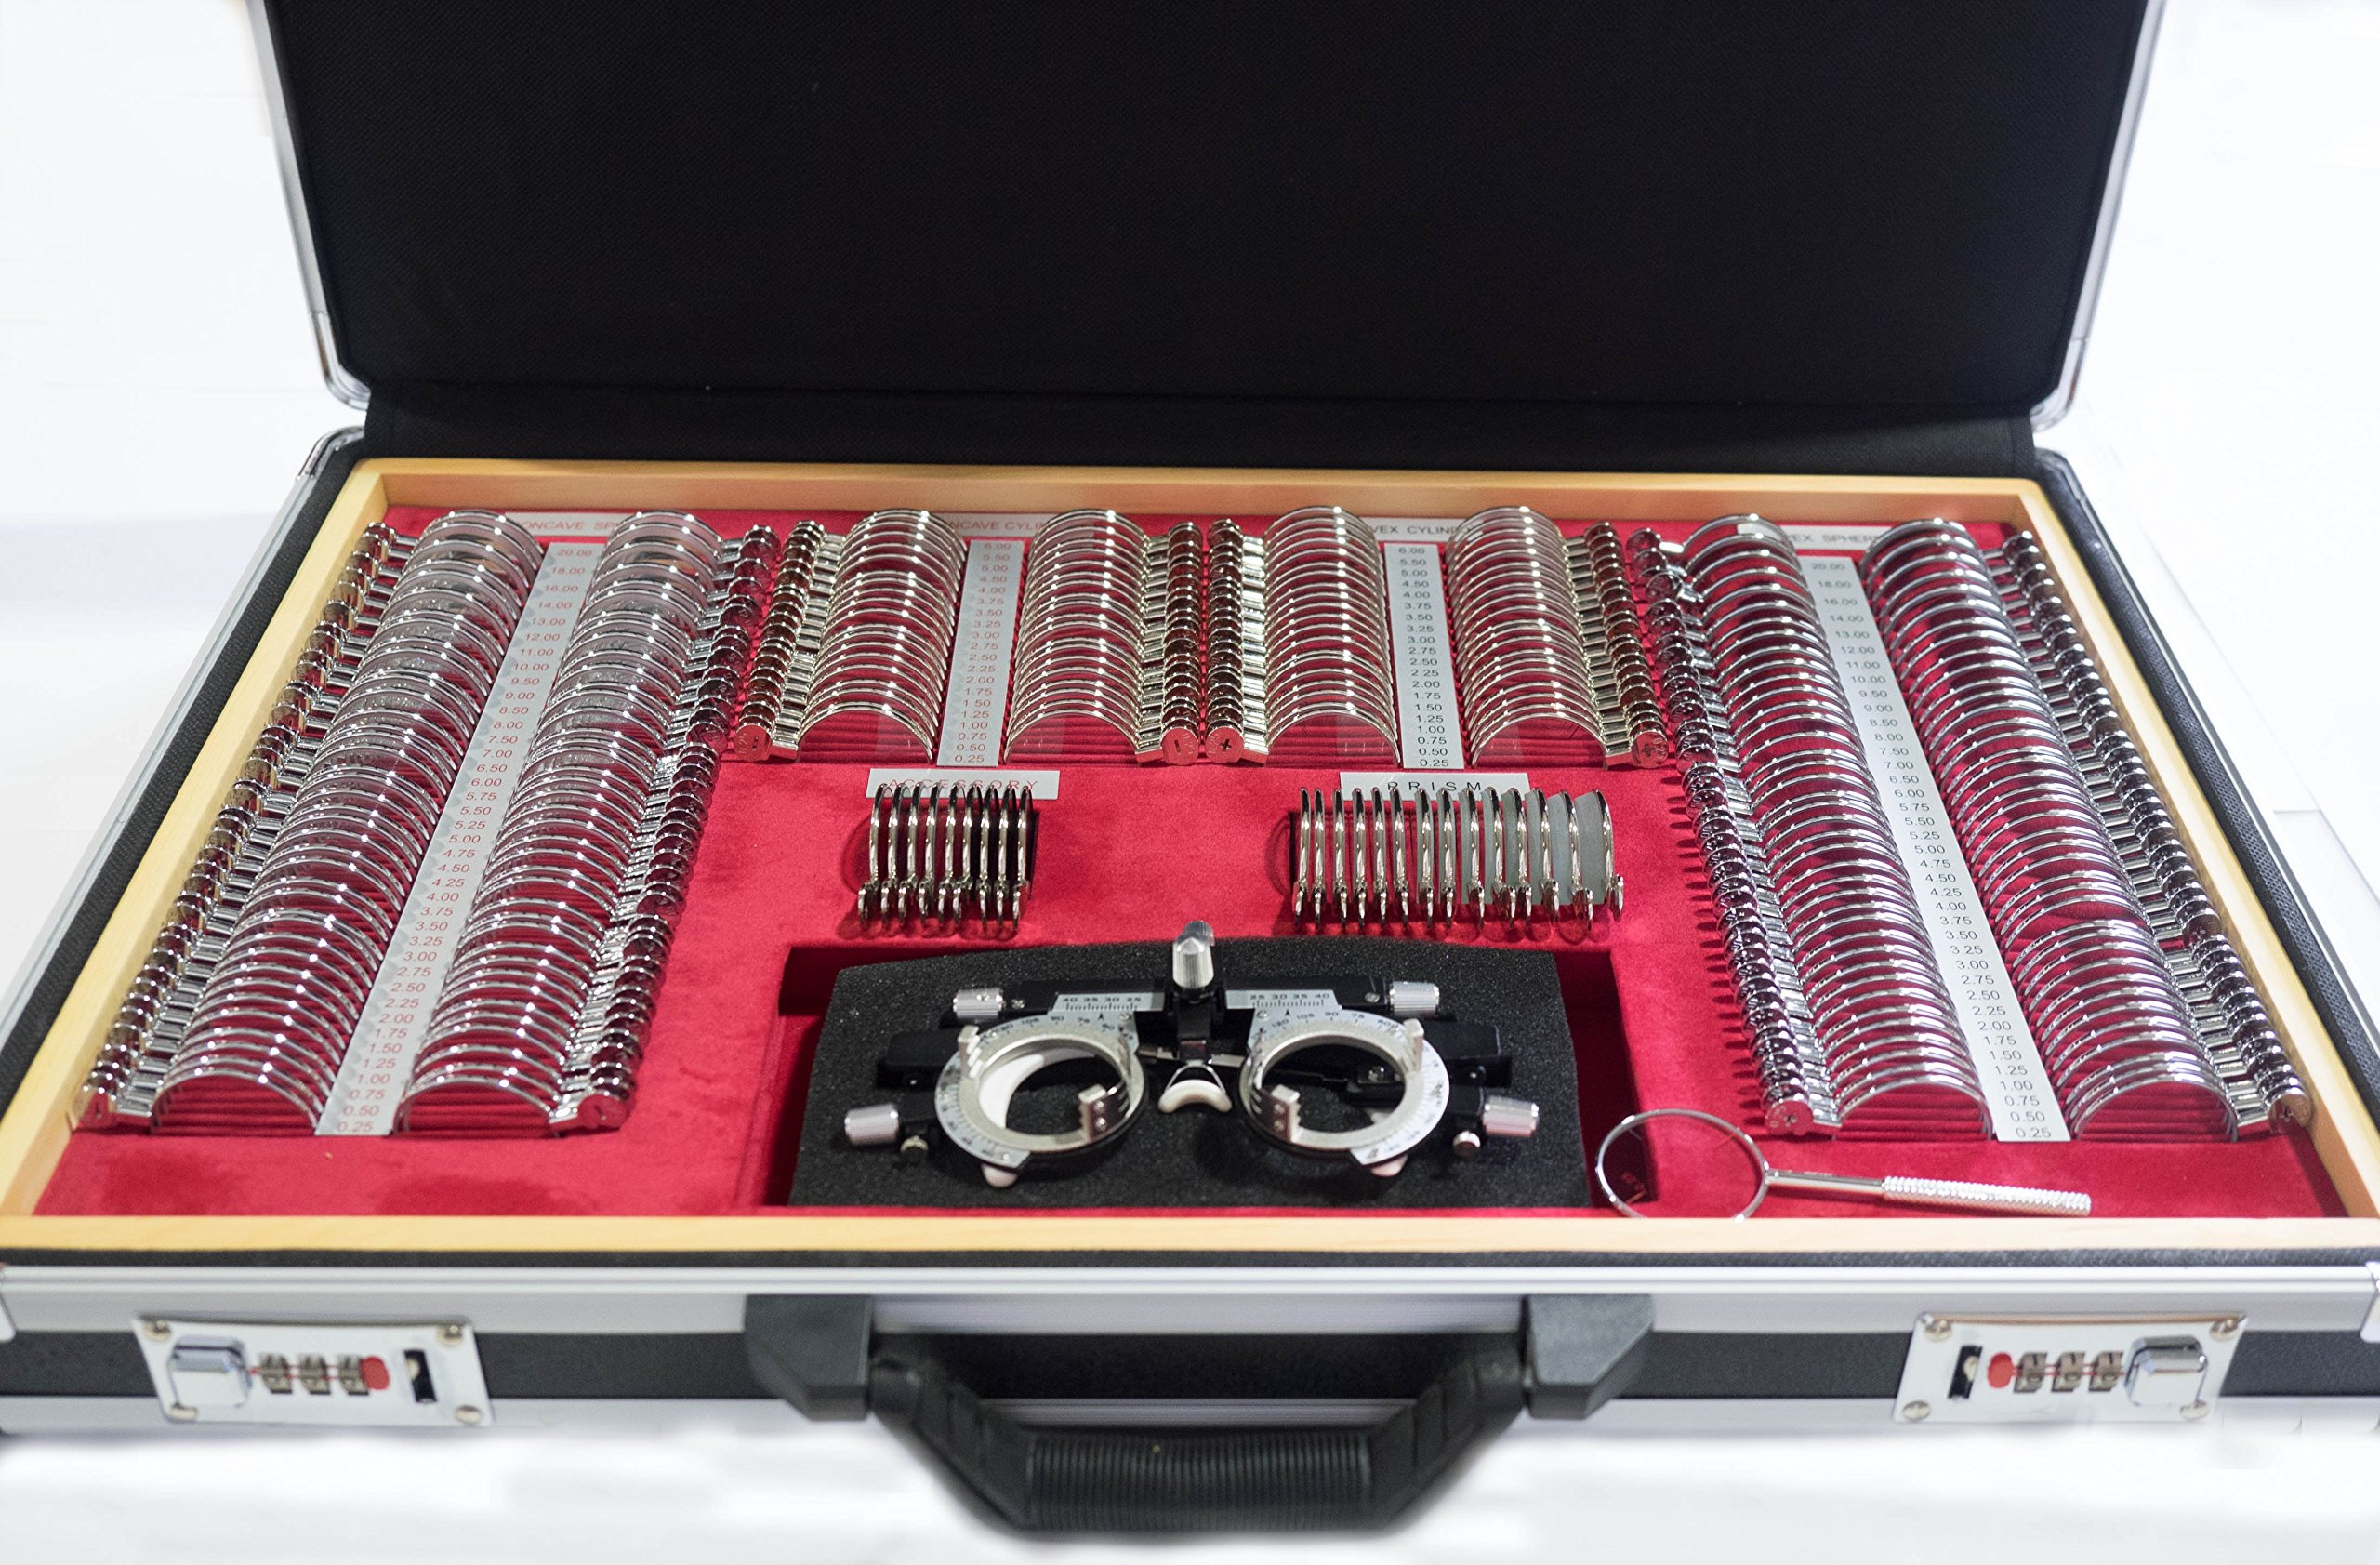 Trial Lens Set-261 Pieces w/ Aluminum Case and Wooden Tray for Drawer Storage by Strong Vision Technologies (Image #1)